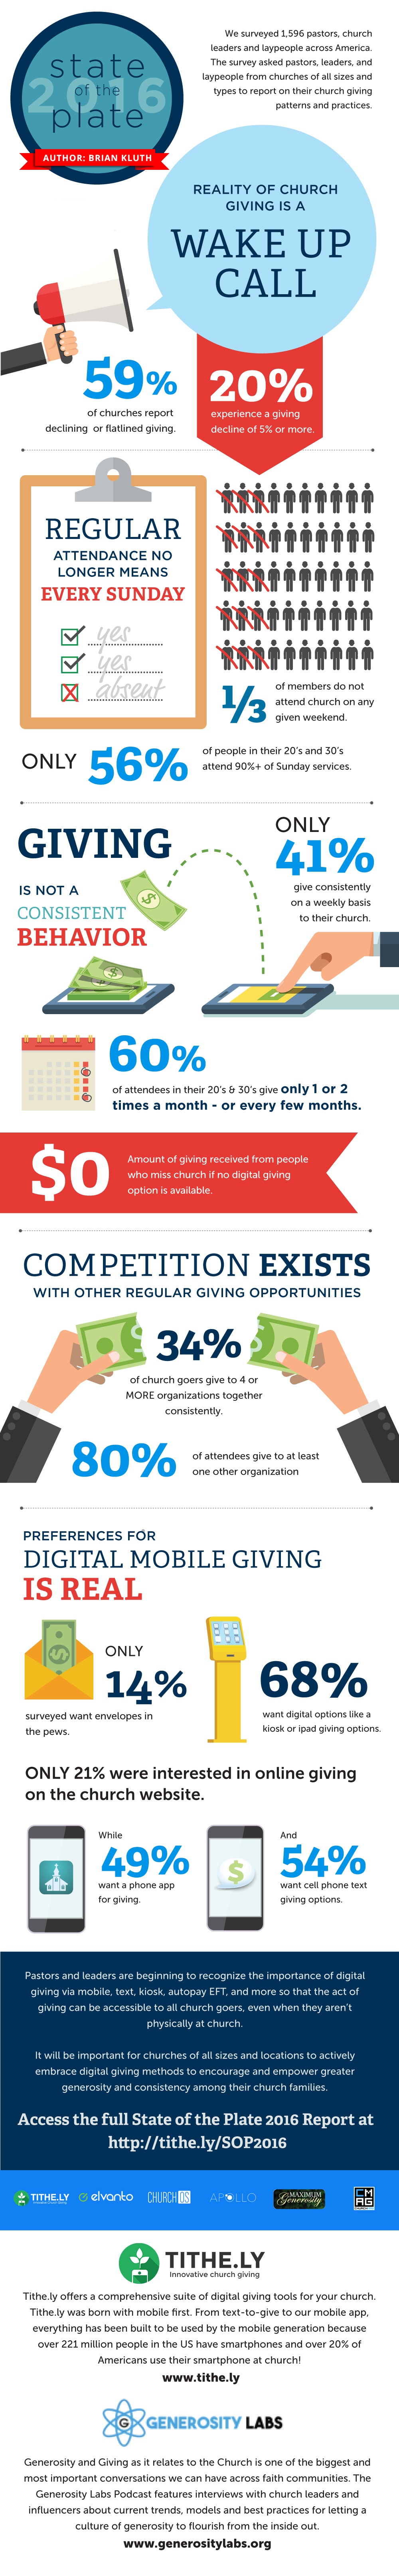 Infographic about church giving from The State of the Plate Report 2016